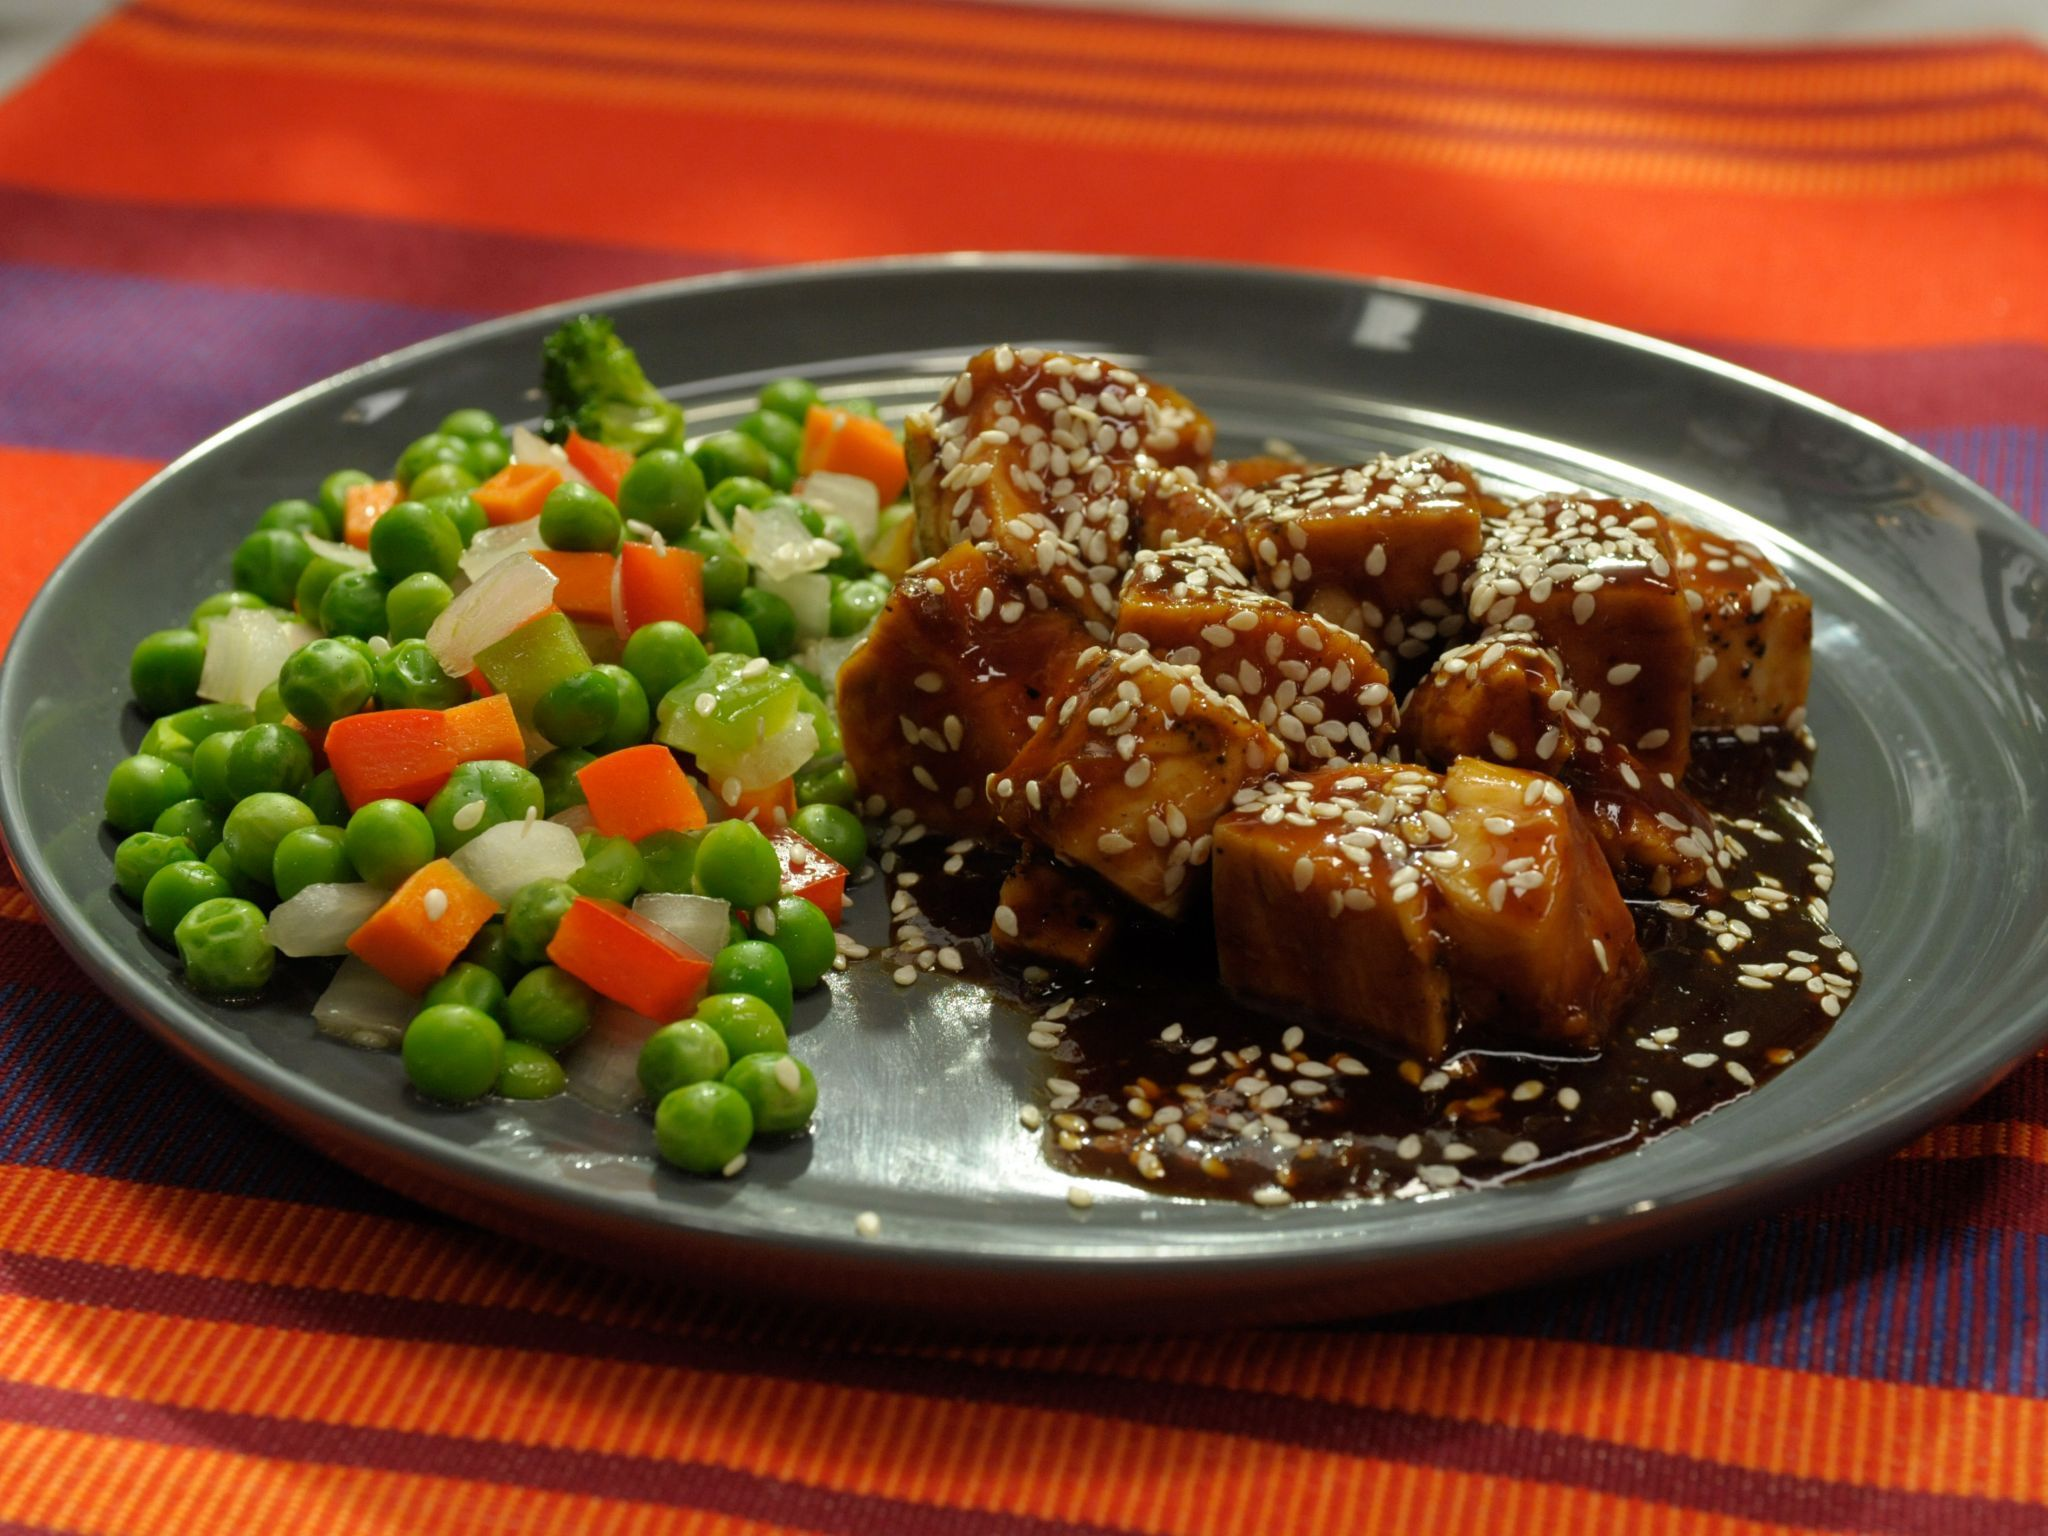 Quick and easy sweet and sticky orange chicken glaze recipe quick and easy sweet and sticky orange chicken glaze recipe chicken glaze easy sweets and orange chicken forumfinder Images